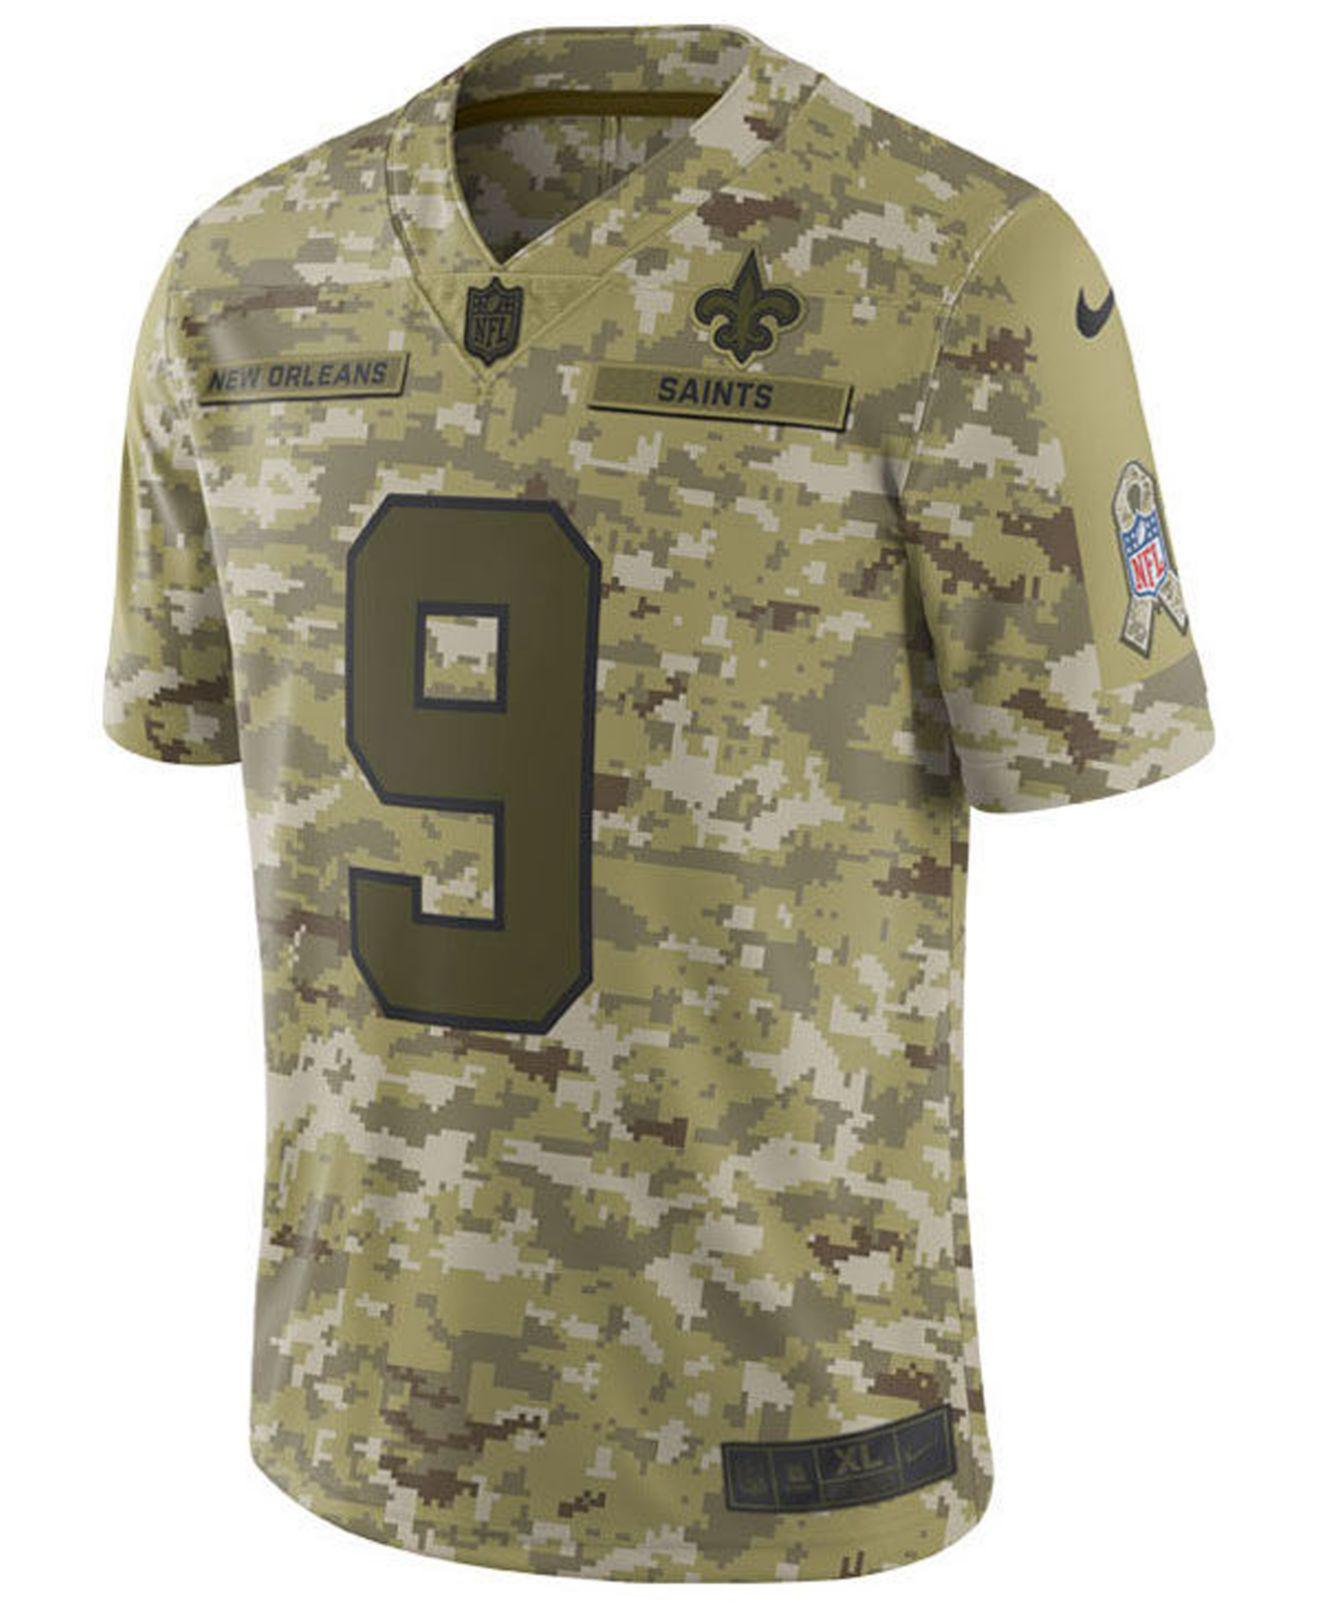 Drew Brees New Orleans Saints Salute To Service Jersey 2018